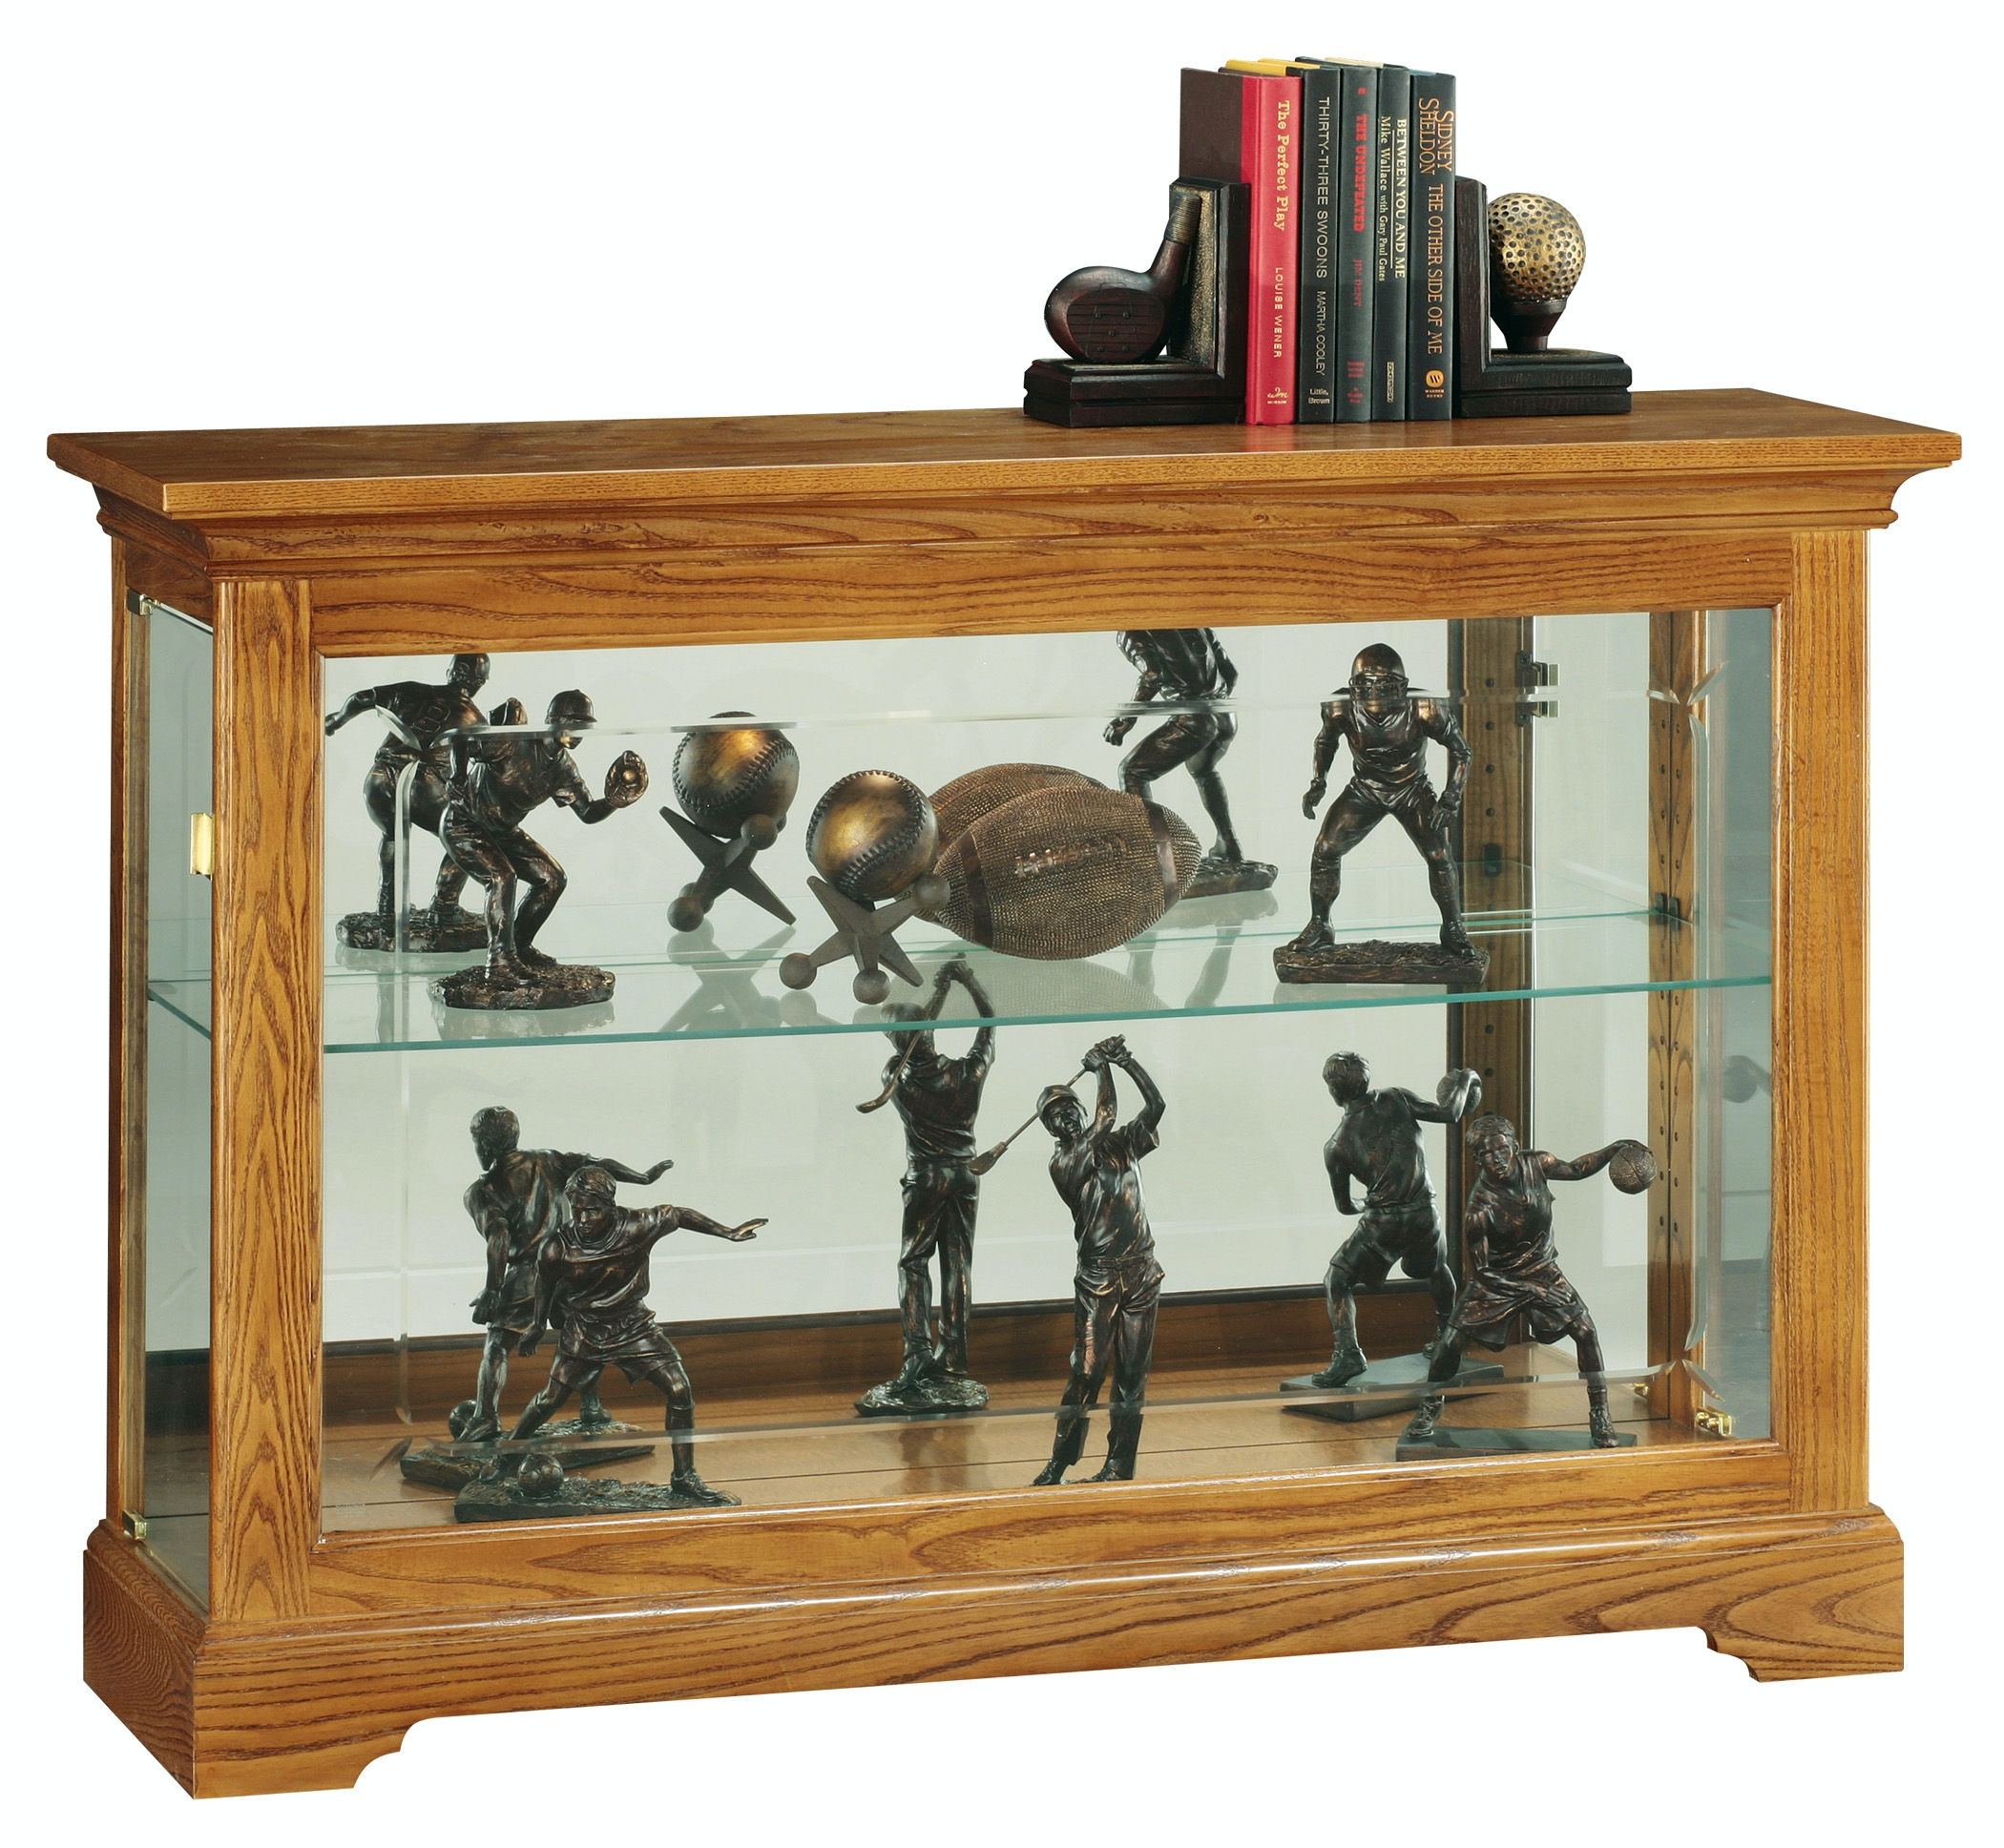 Howard Miller Living Room Burrows Curio Cabinet 680535 at Home Inspirations Thomasville  sc 1 st  Home Inspirations Thomasville & Howard Miller Living Room Burrows Curio Cabinet 680535 - Home ...